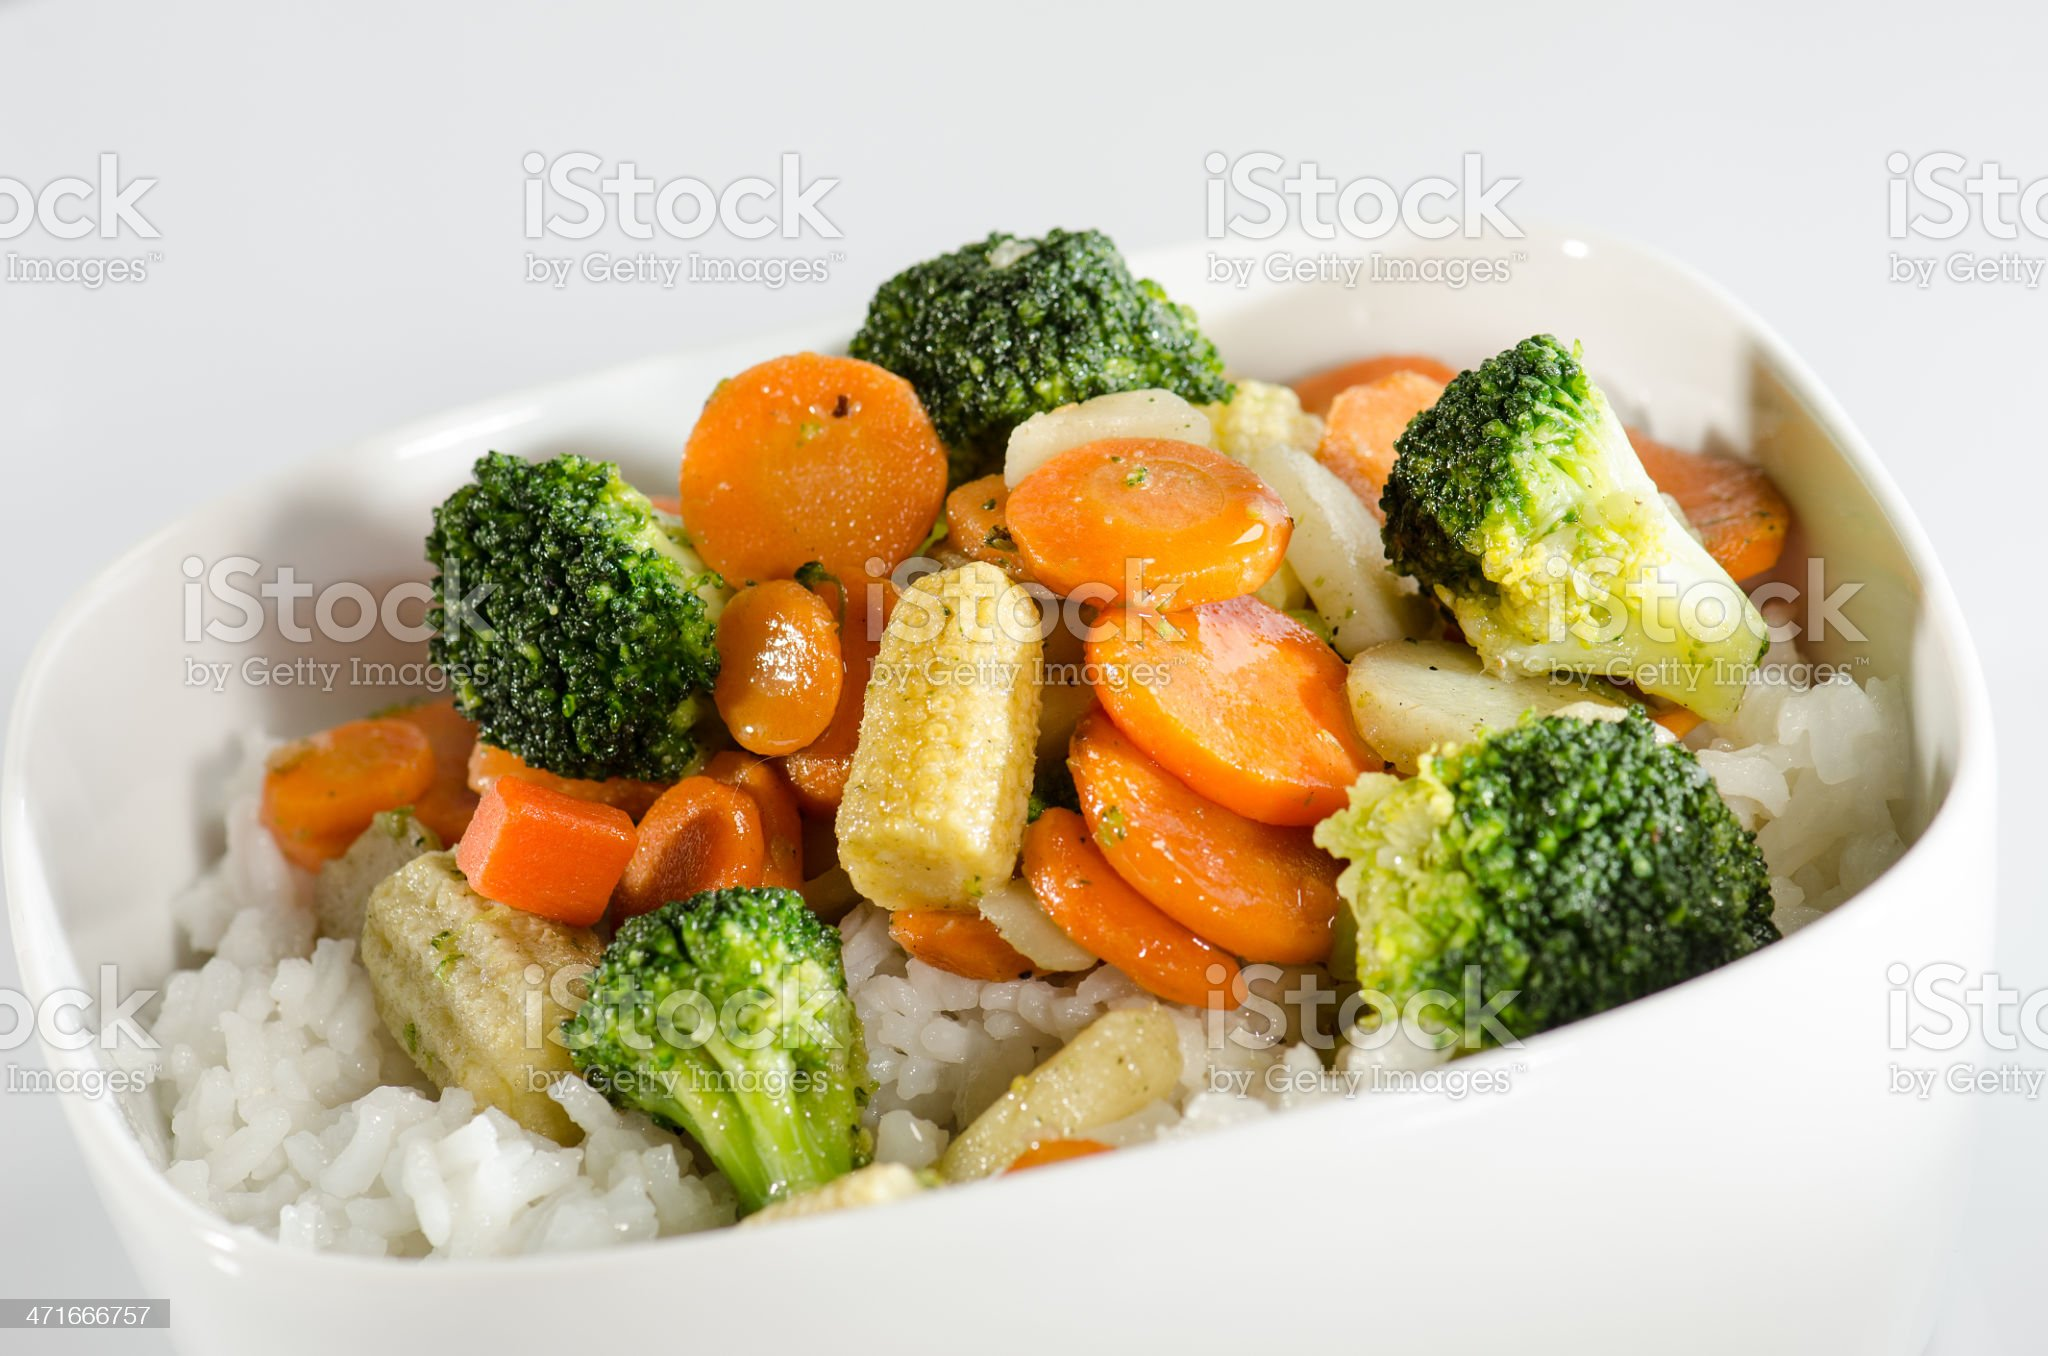 Rice and saut??ed vegetables royalty-free stock photo